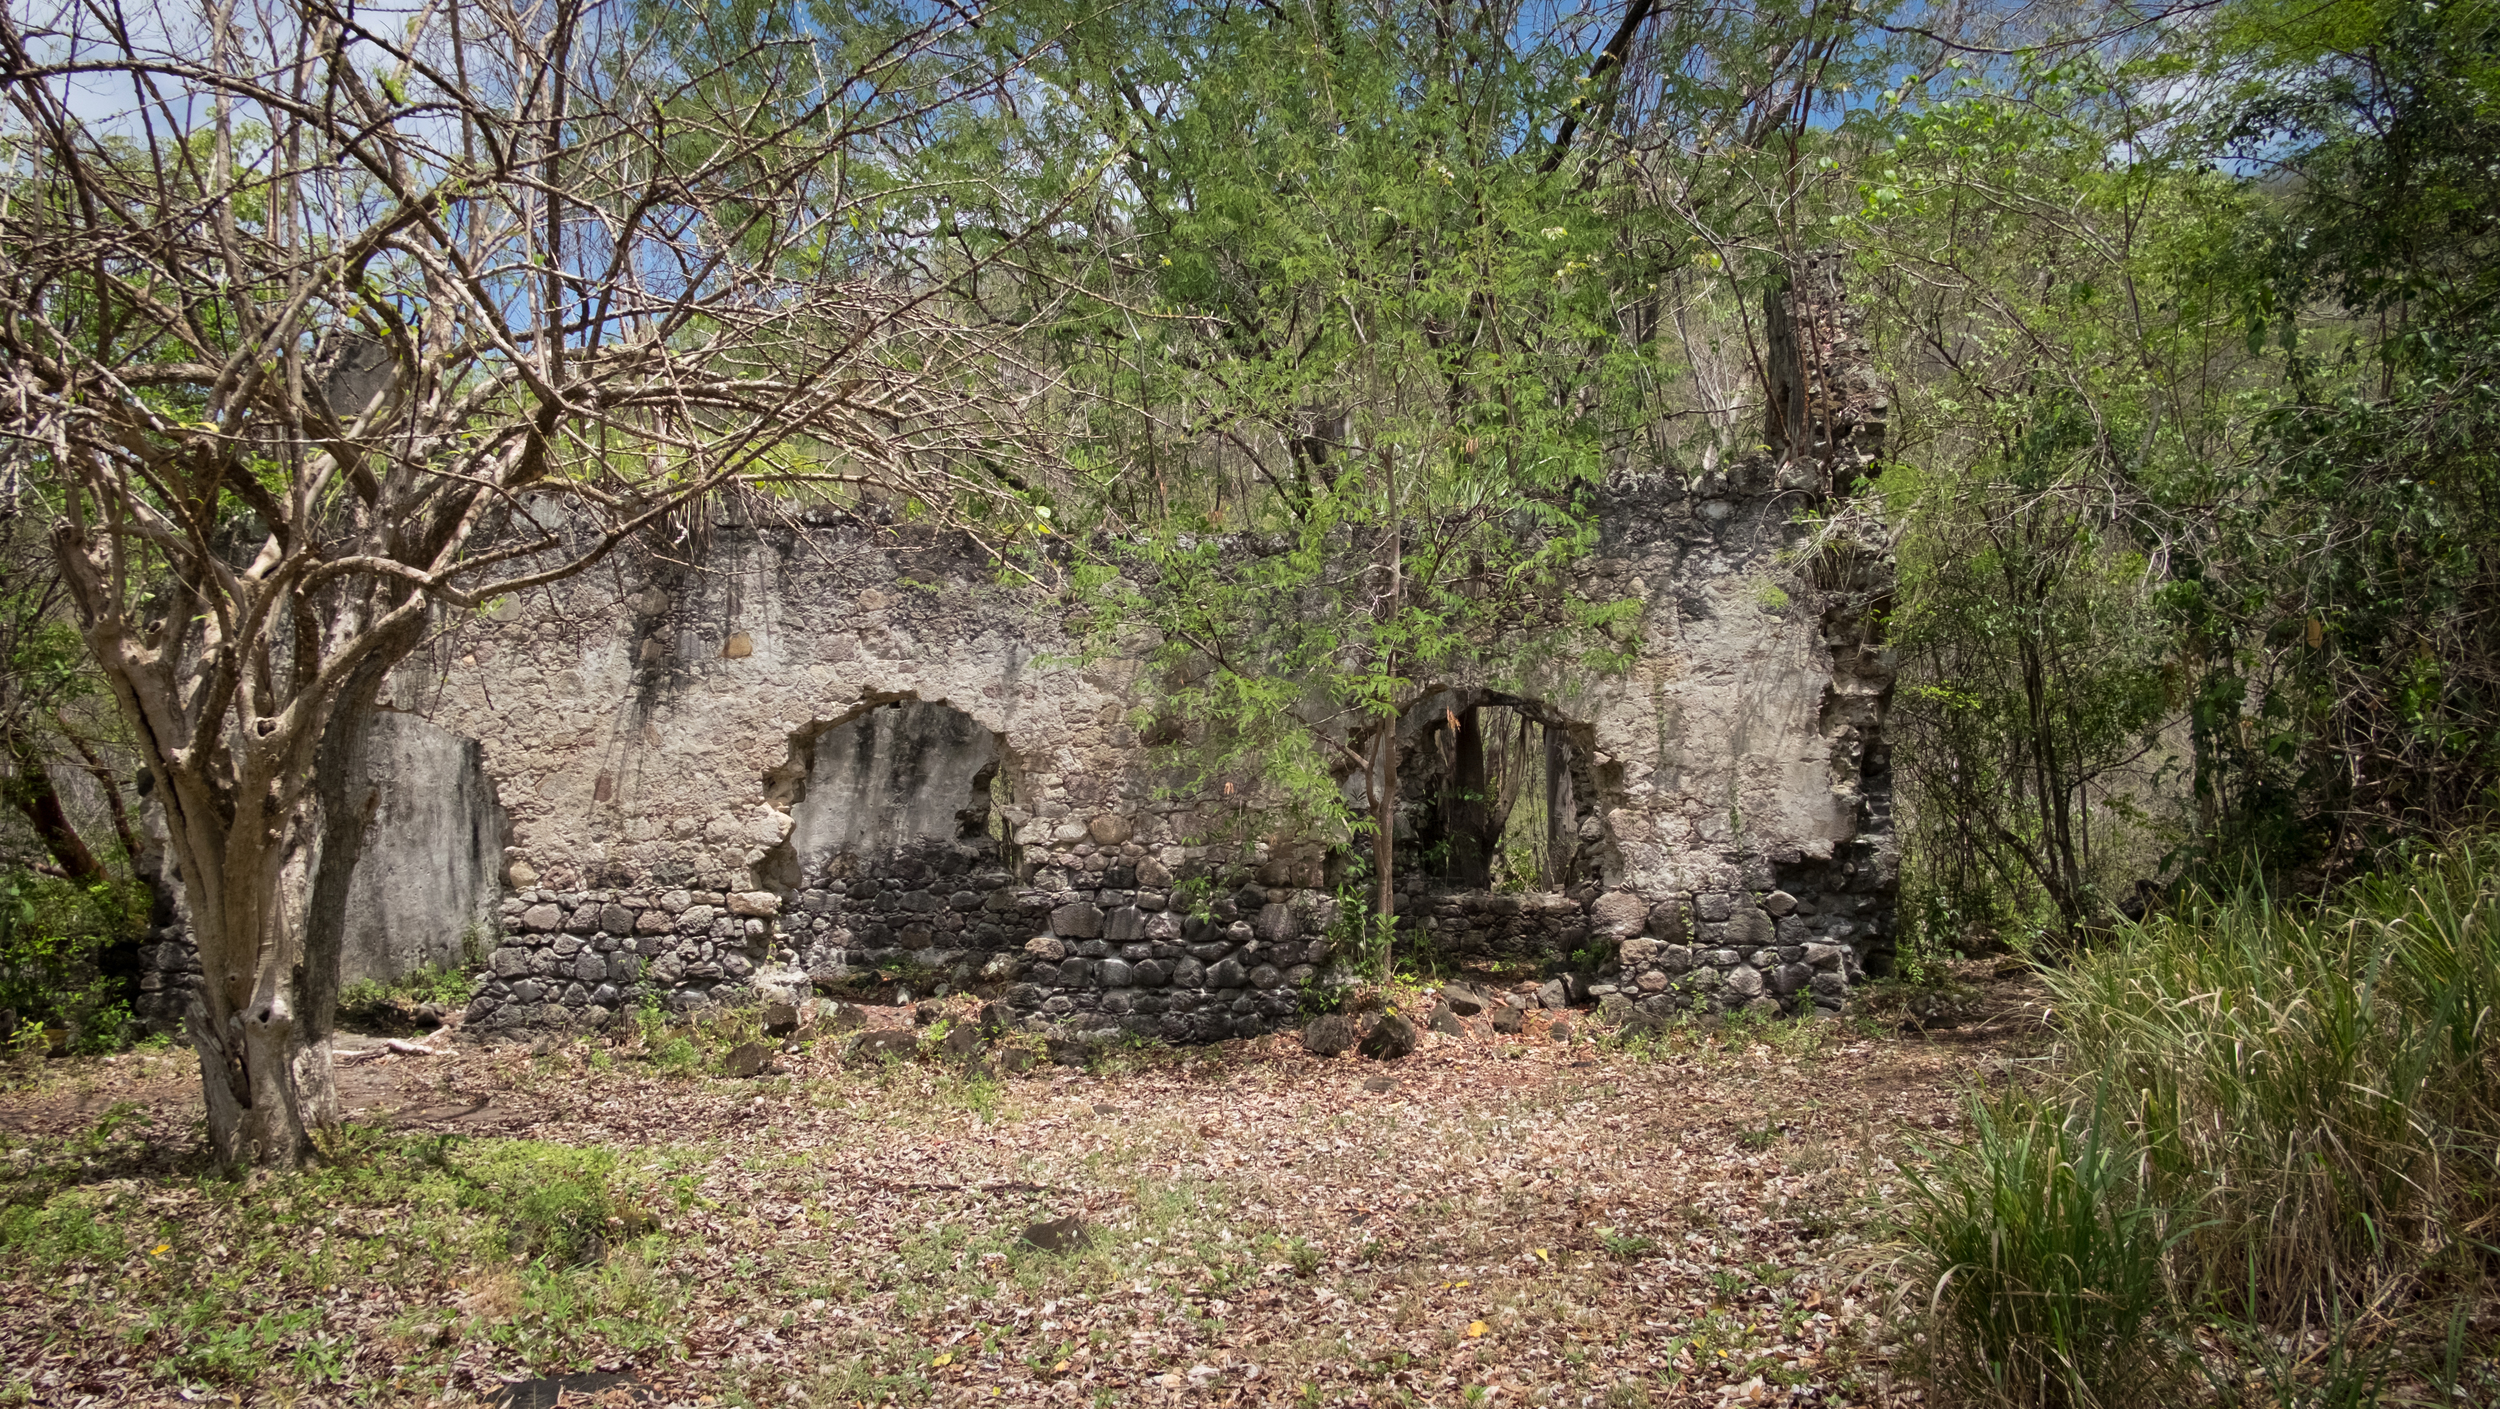 The climb up those ropes leads you to the old church and cemetery located above the plantation house.